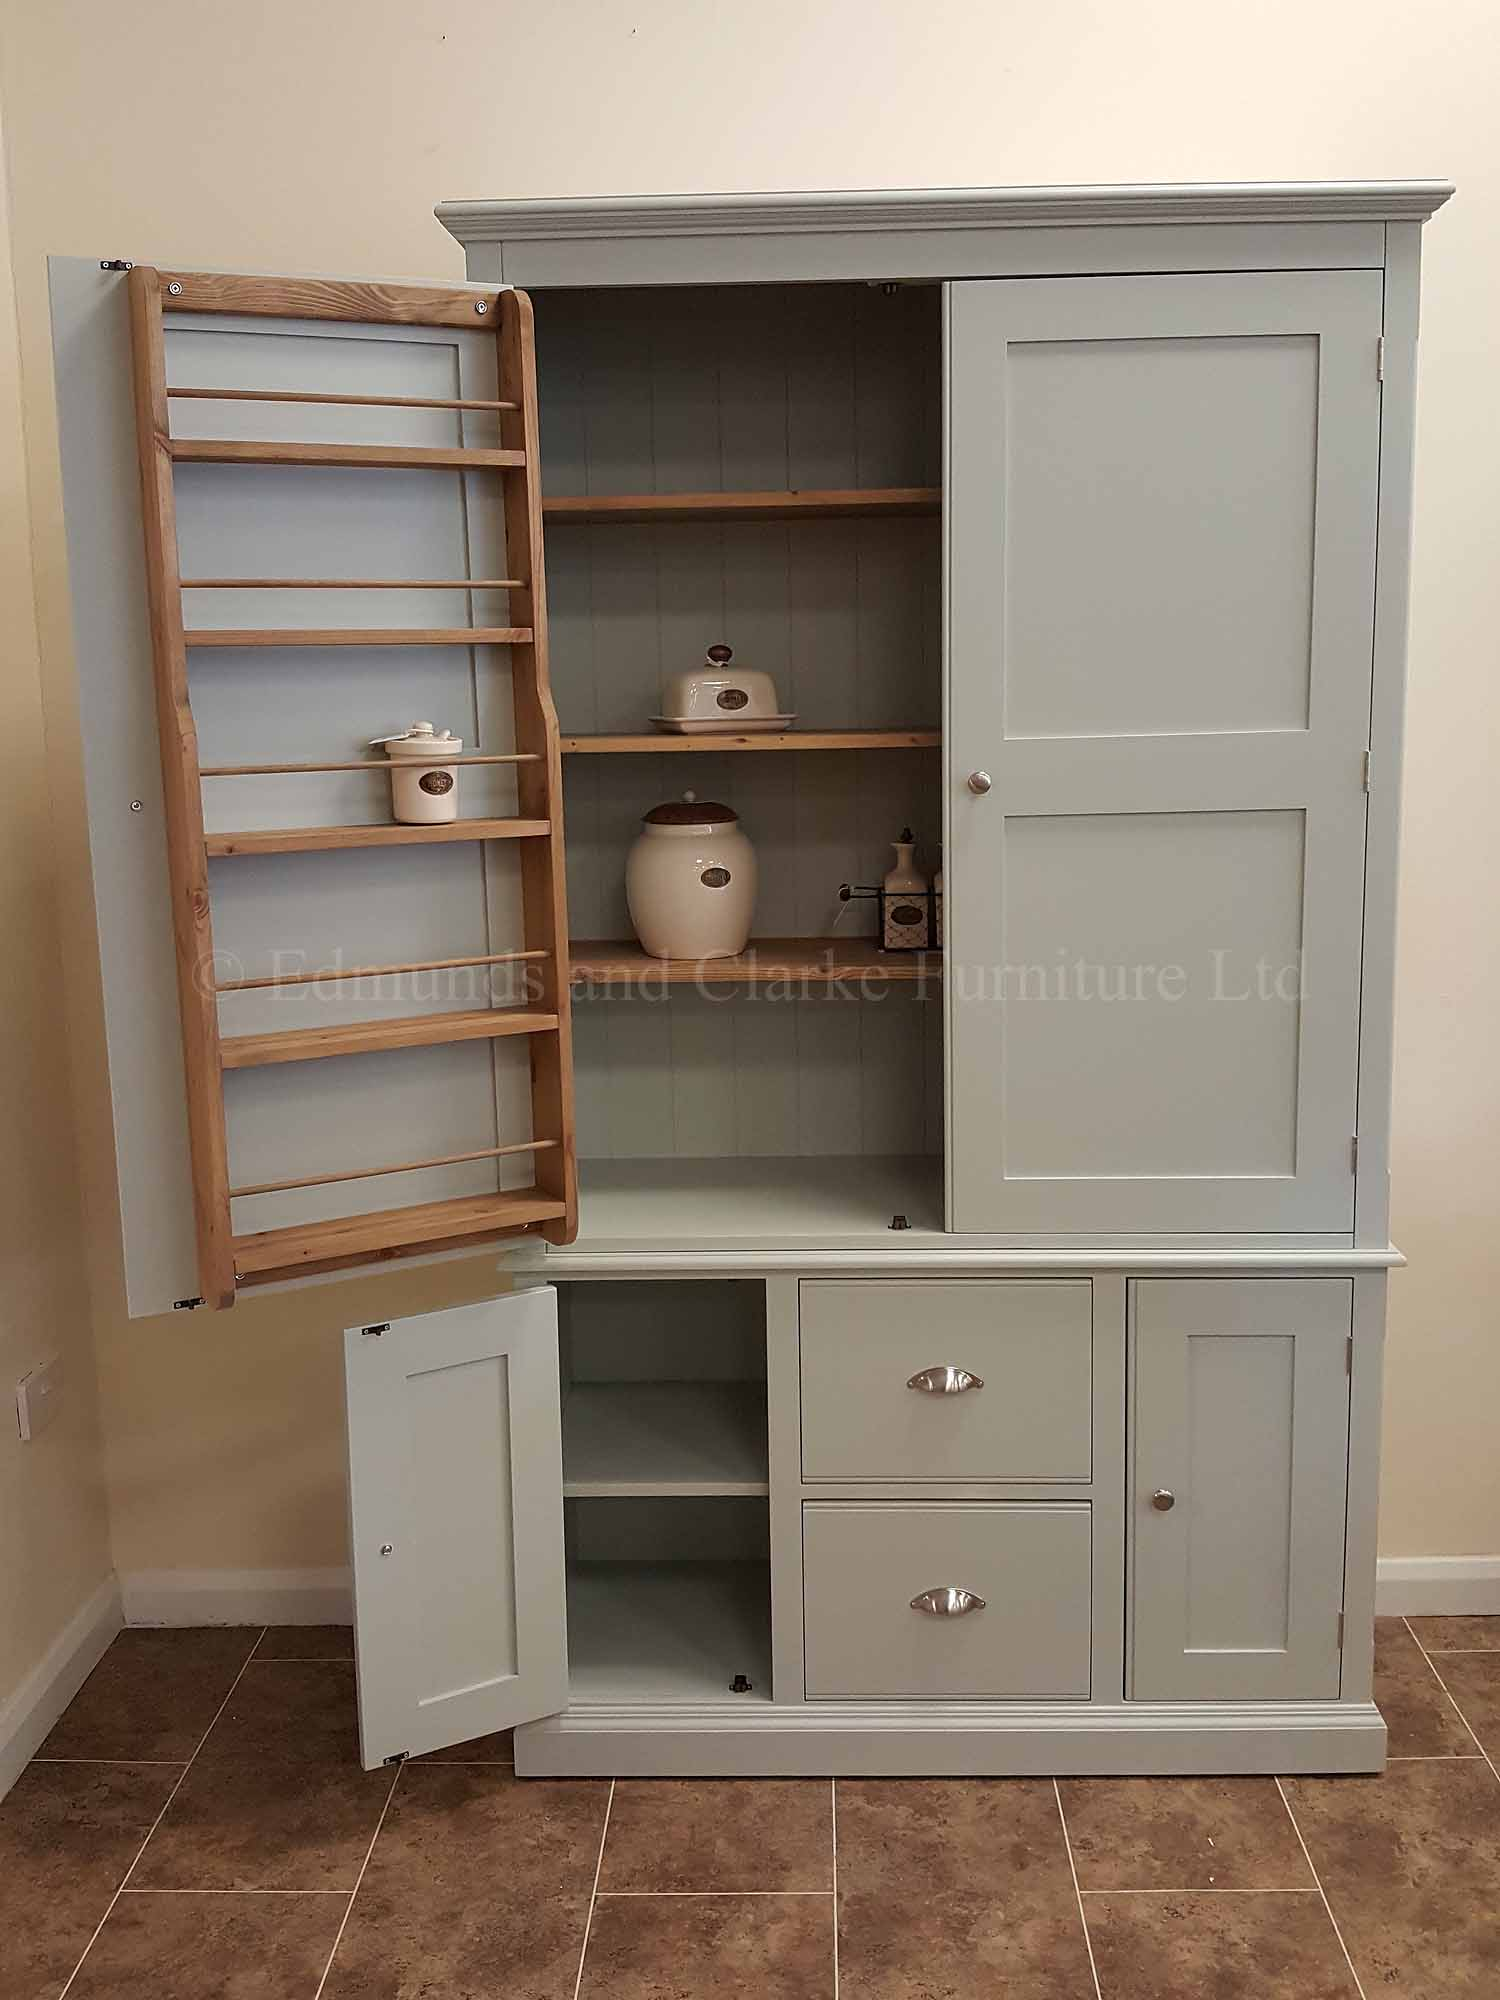 Wide kitchen larder cupboard painted in a choice of colours